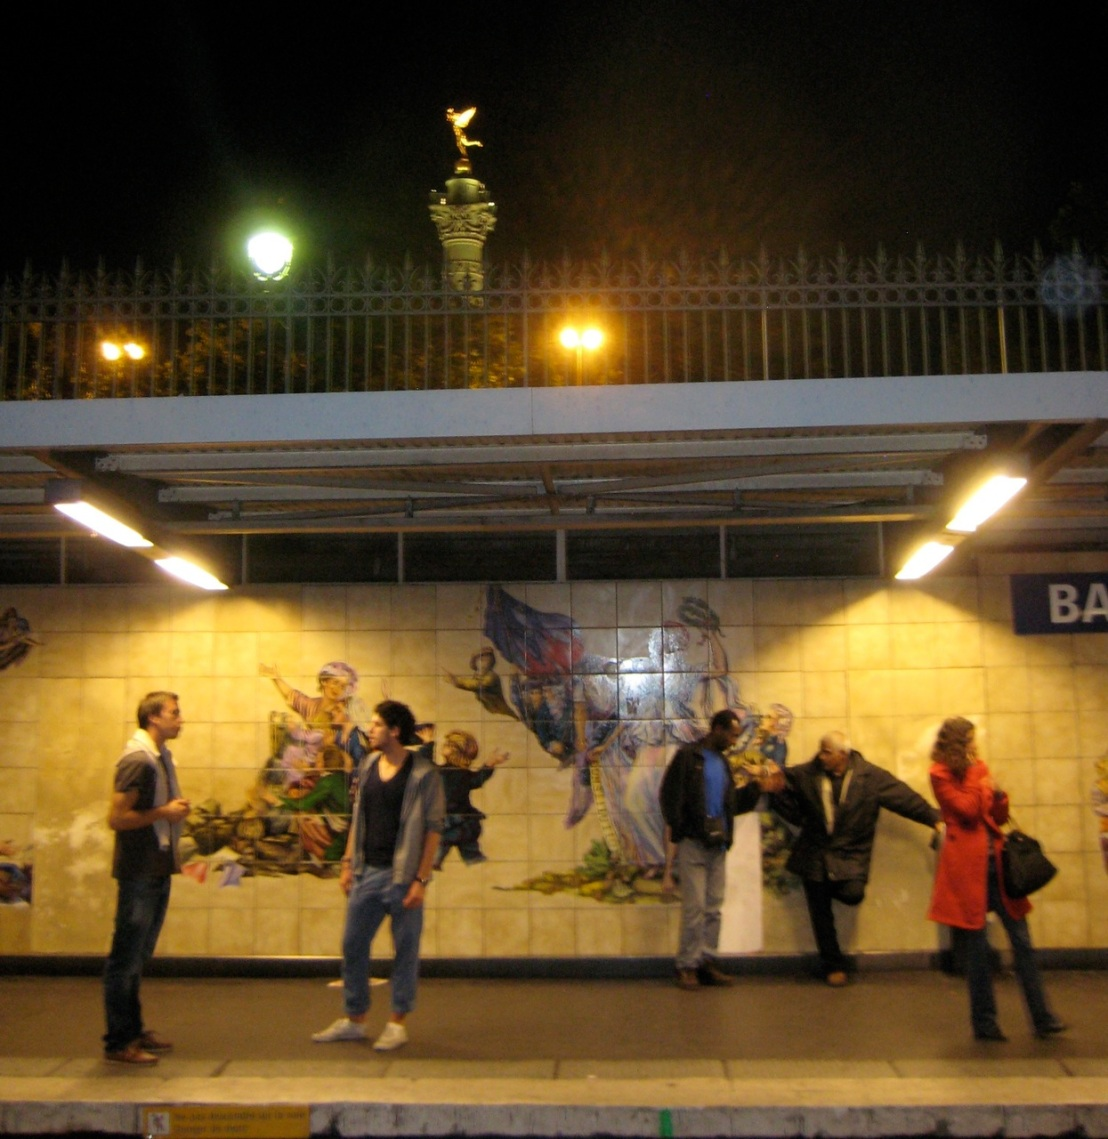 The Bastille Metro stop in the heart of urban Paris.